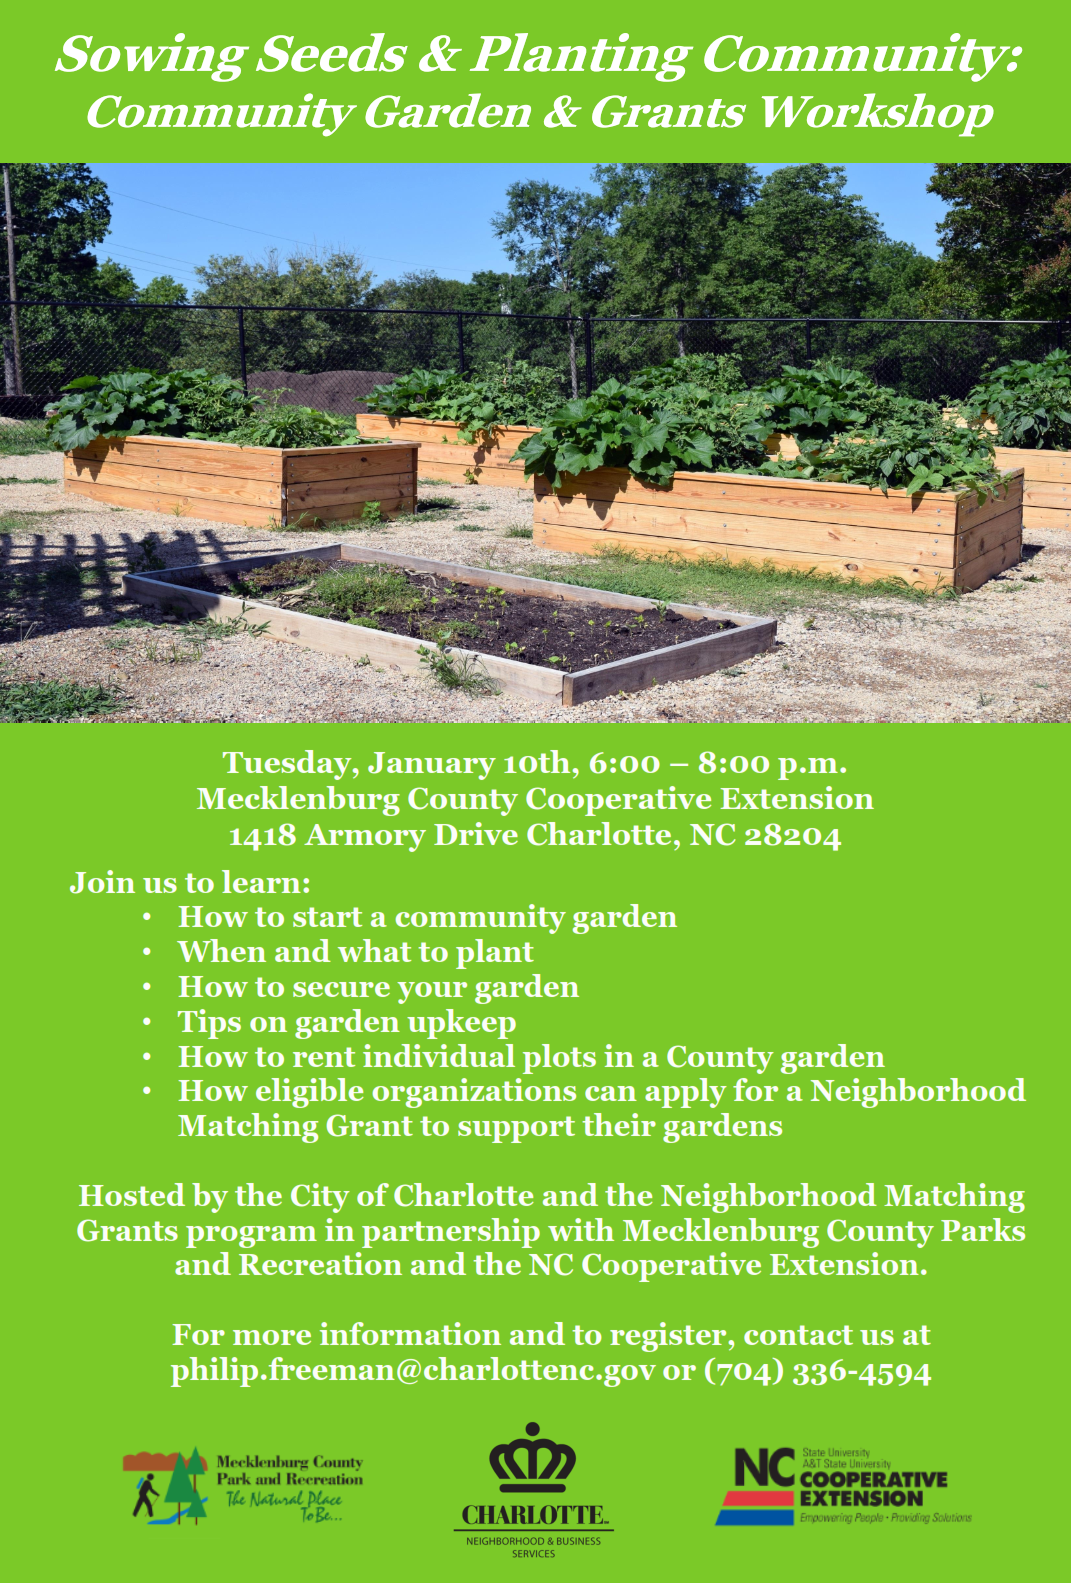 Community Garden Grants Workshop Tuesday January 10th